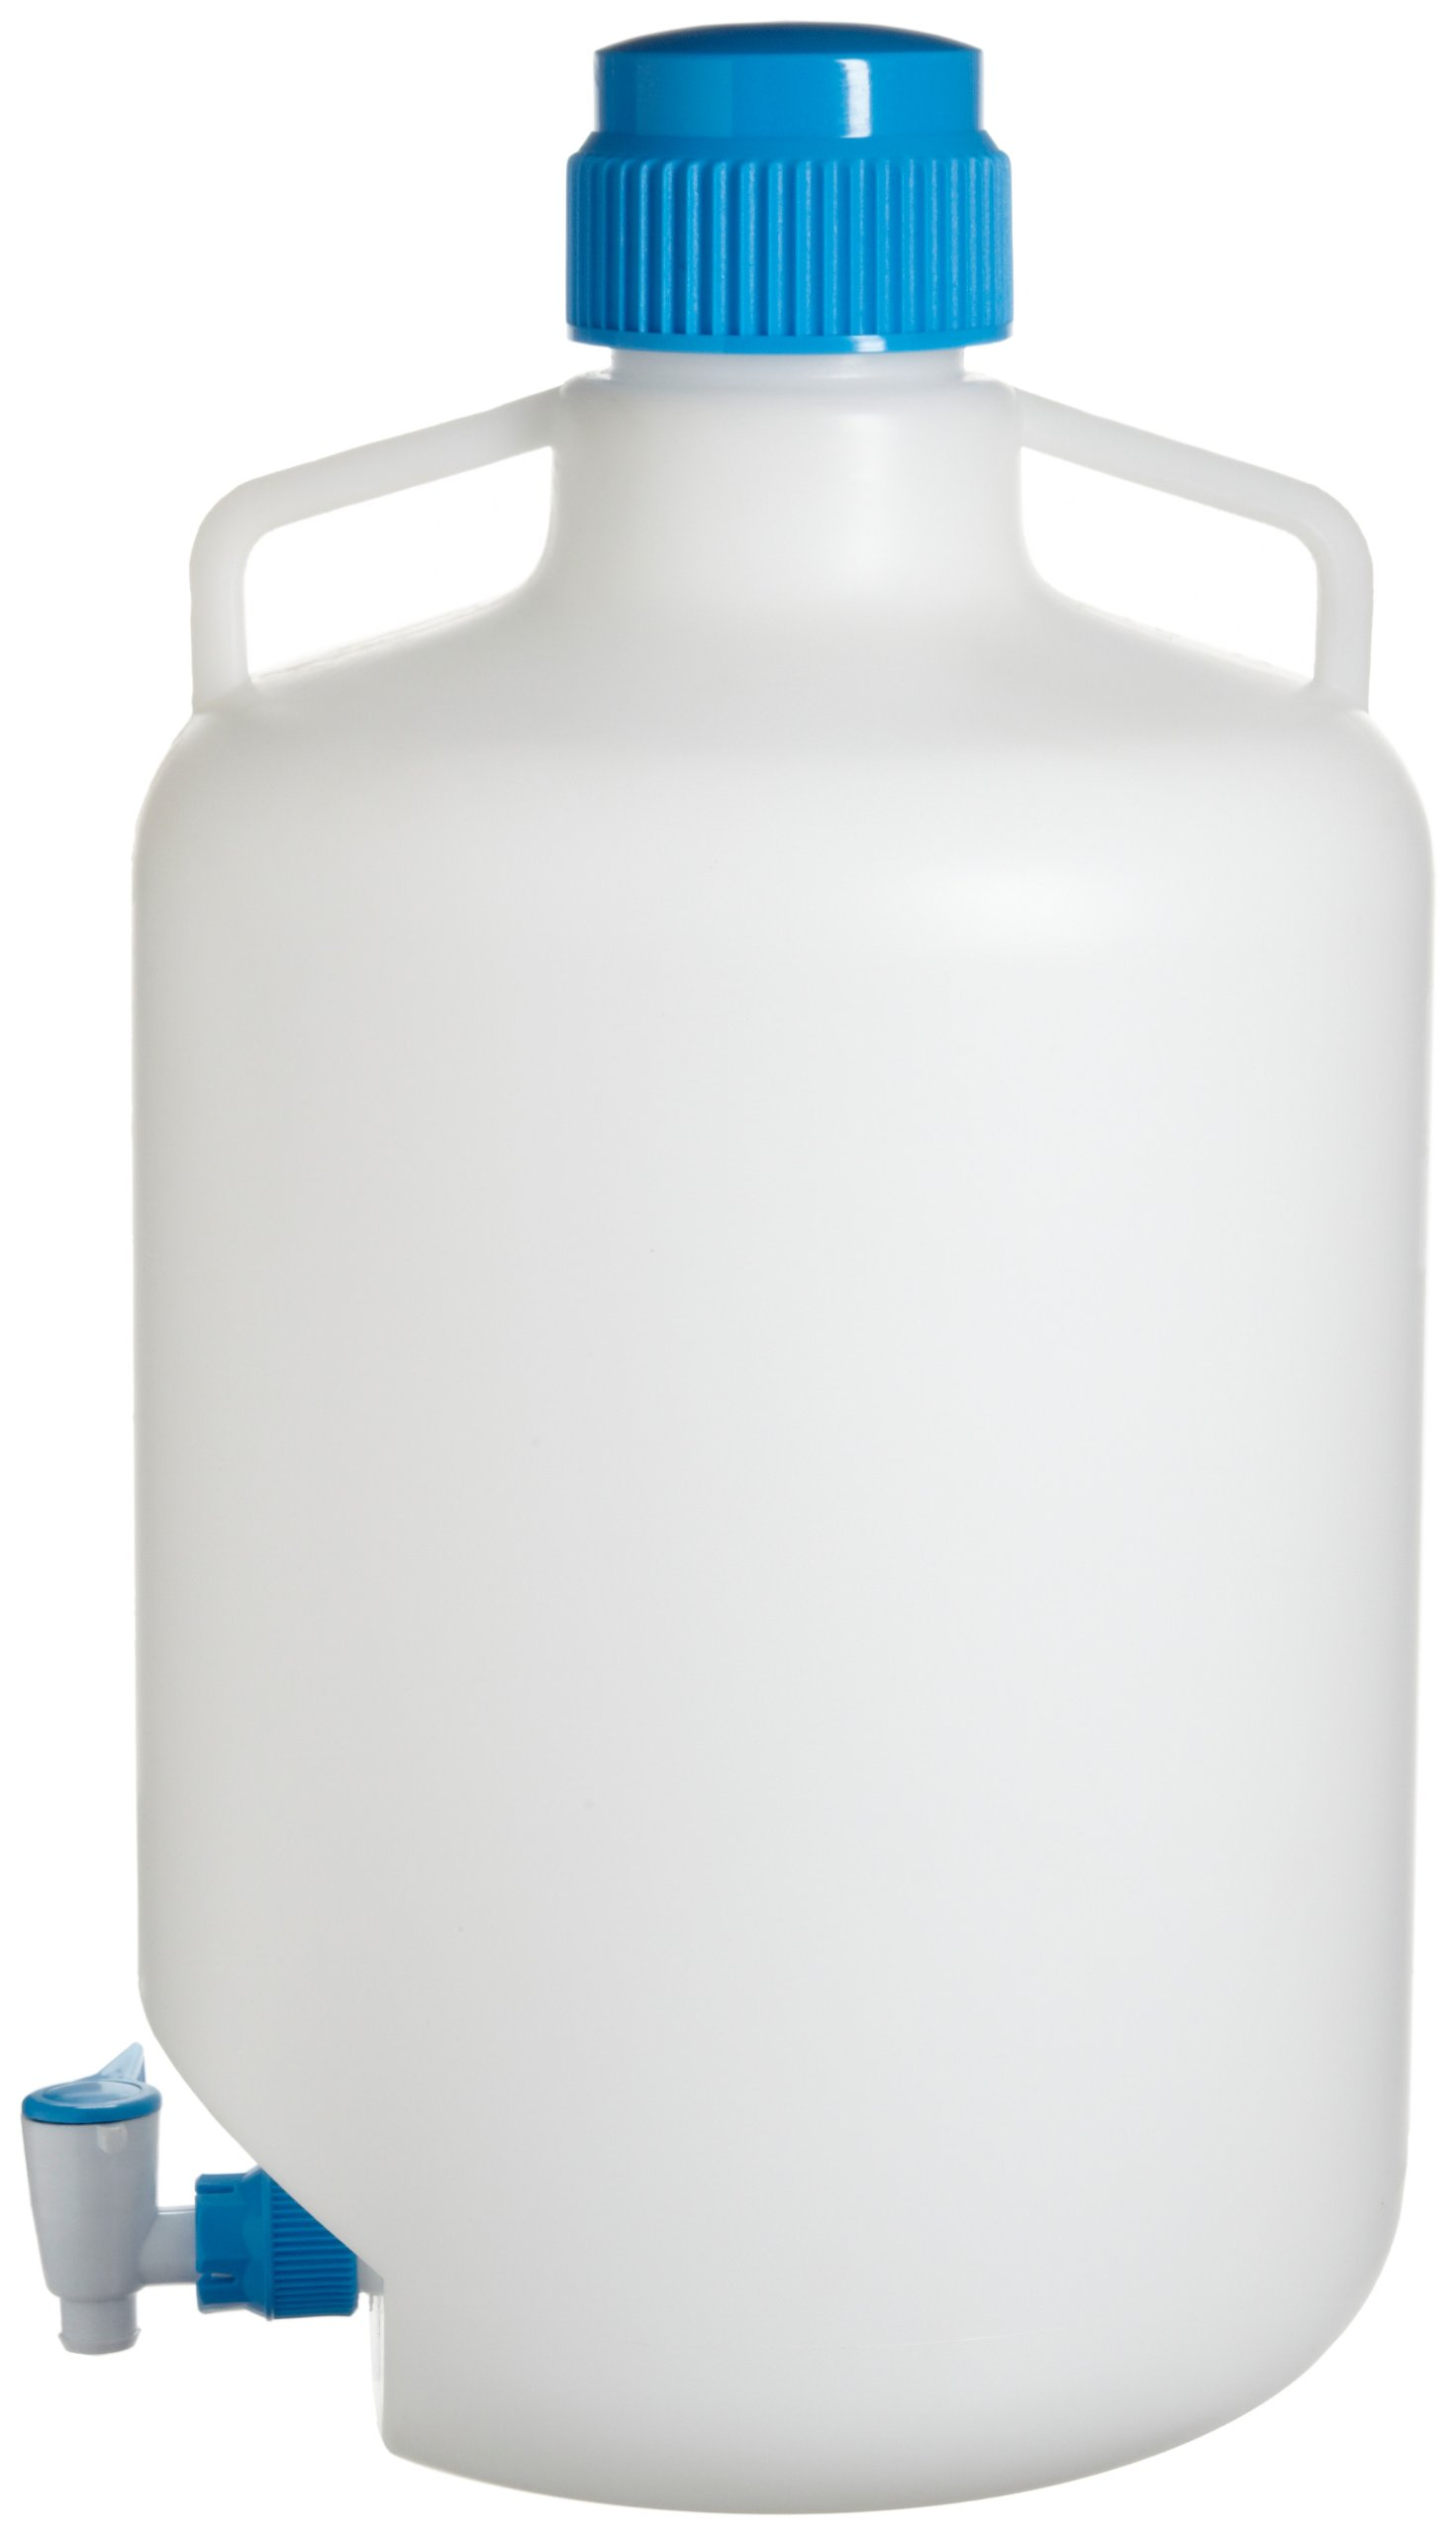 Bel-Art Autoclavable Polypropylene Carboy with Spigot; 20 Liters (5.3 Gallons) (F11846-0050) by SP Scienceware